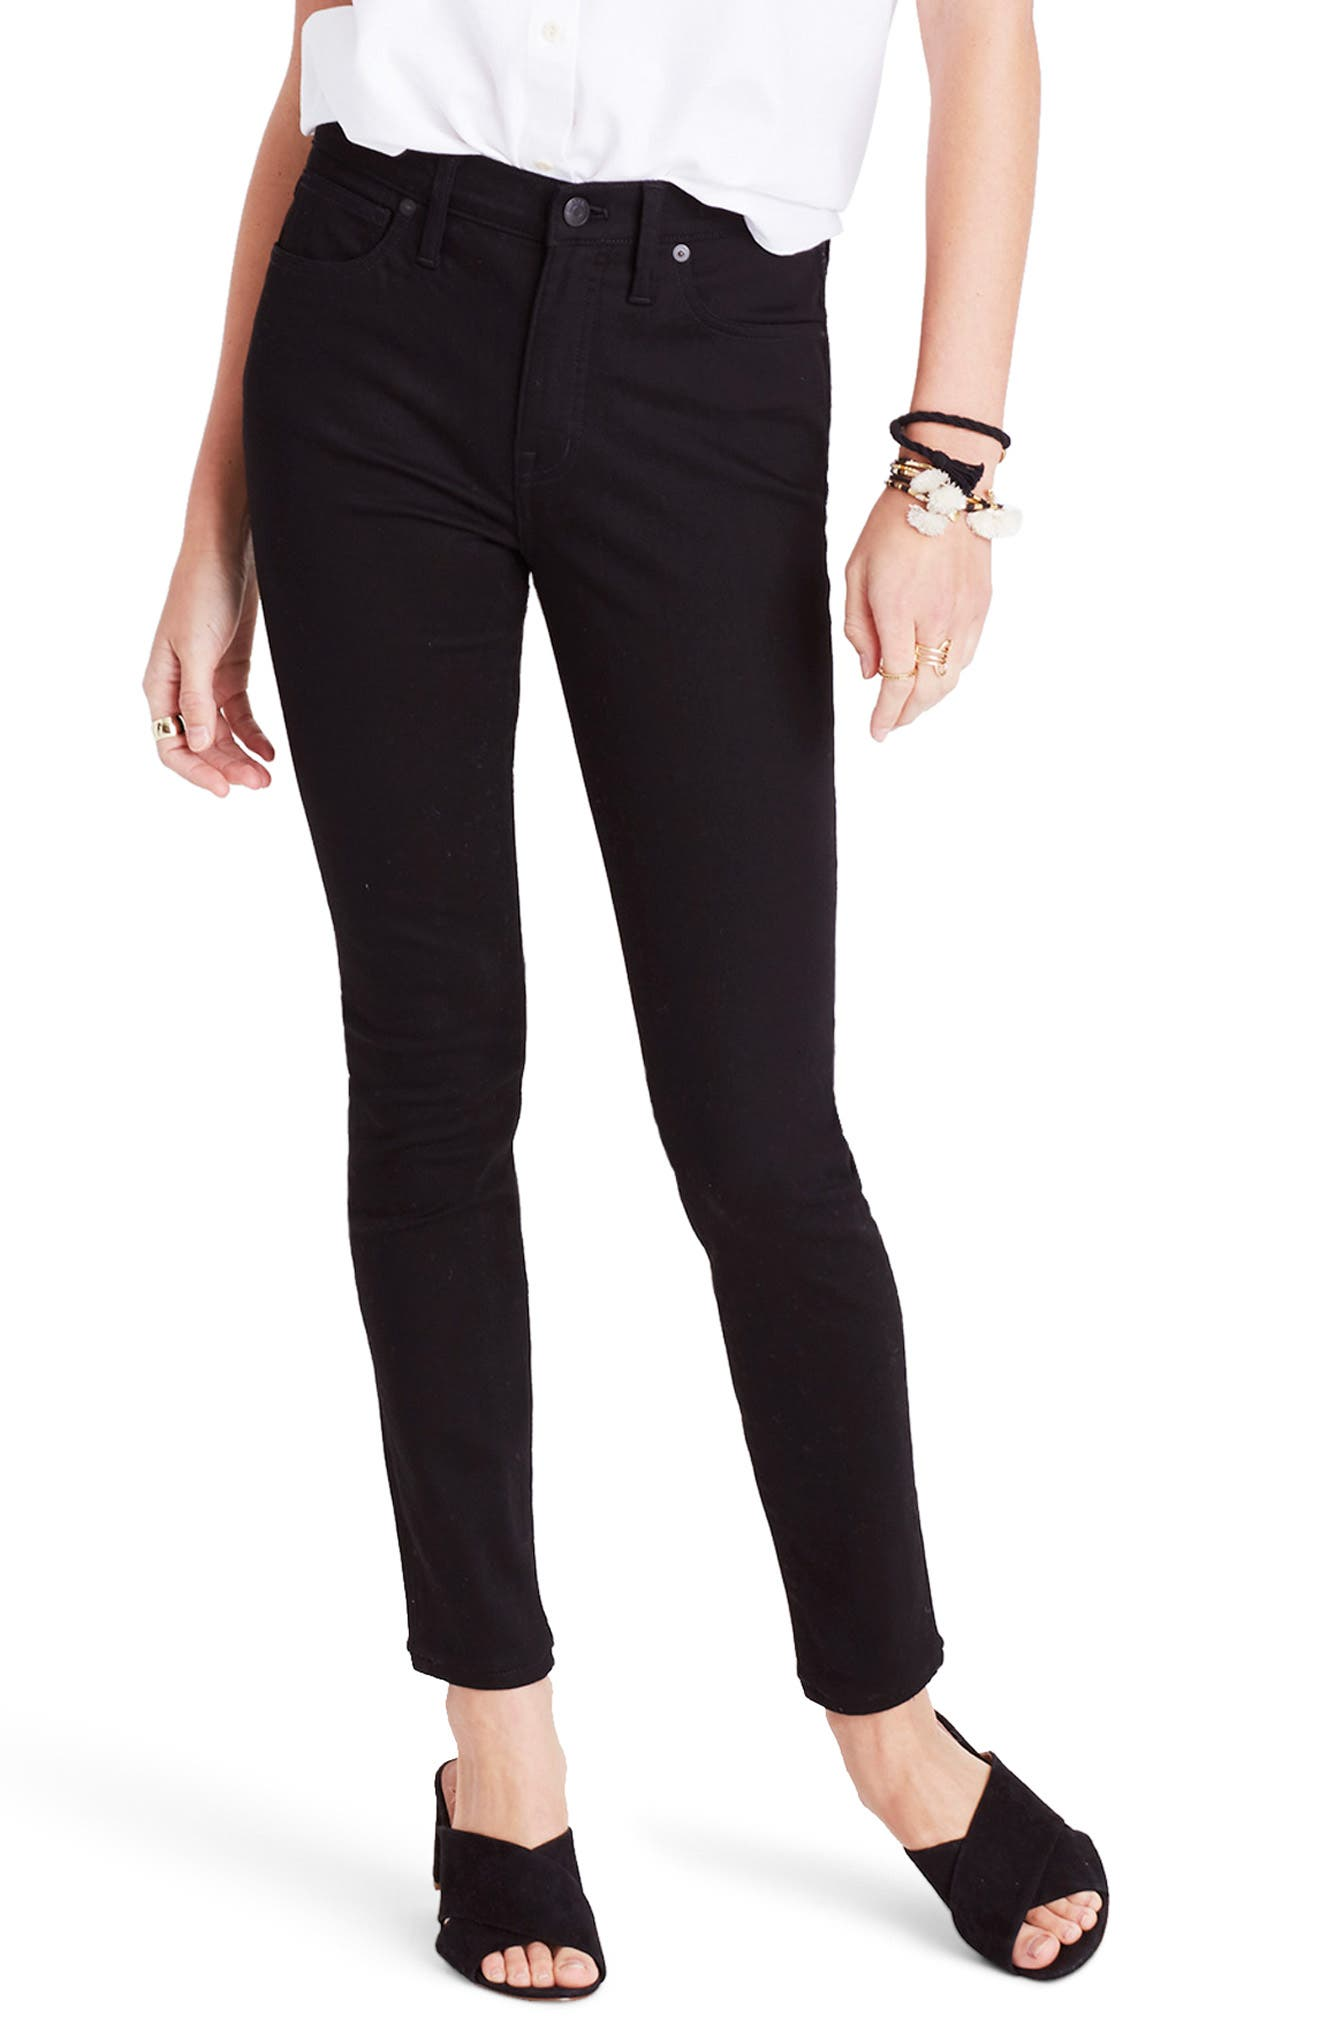 9-Inch High Waist Skinny Jeans,                         Main,                         color, BLACK FROST